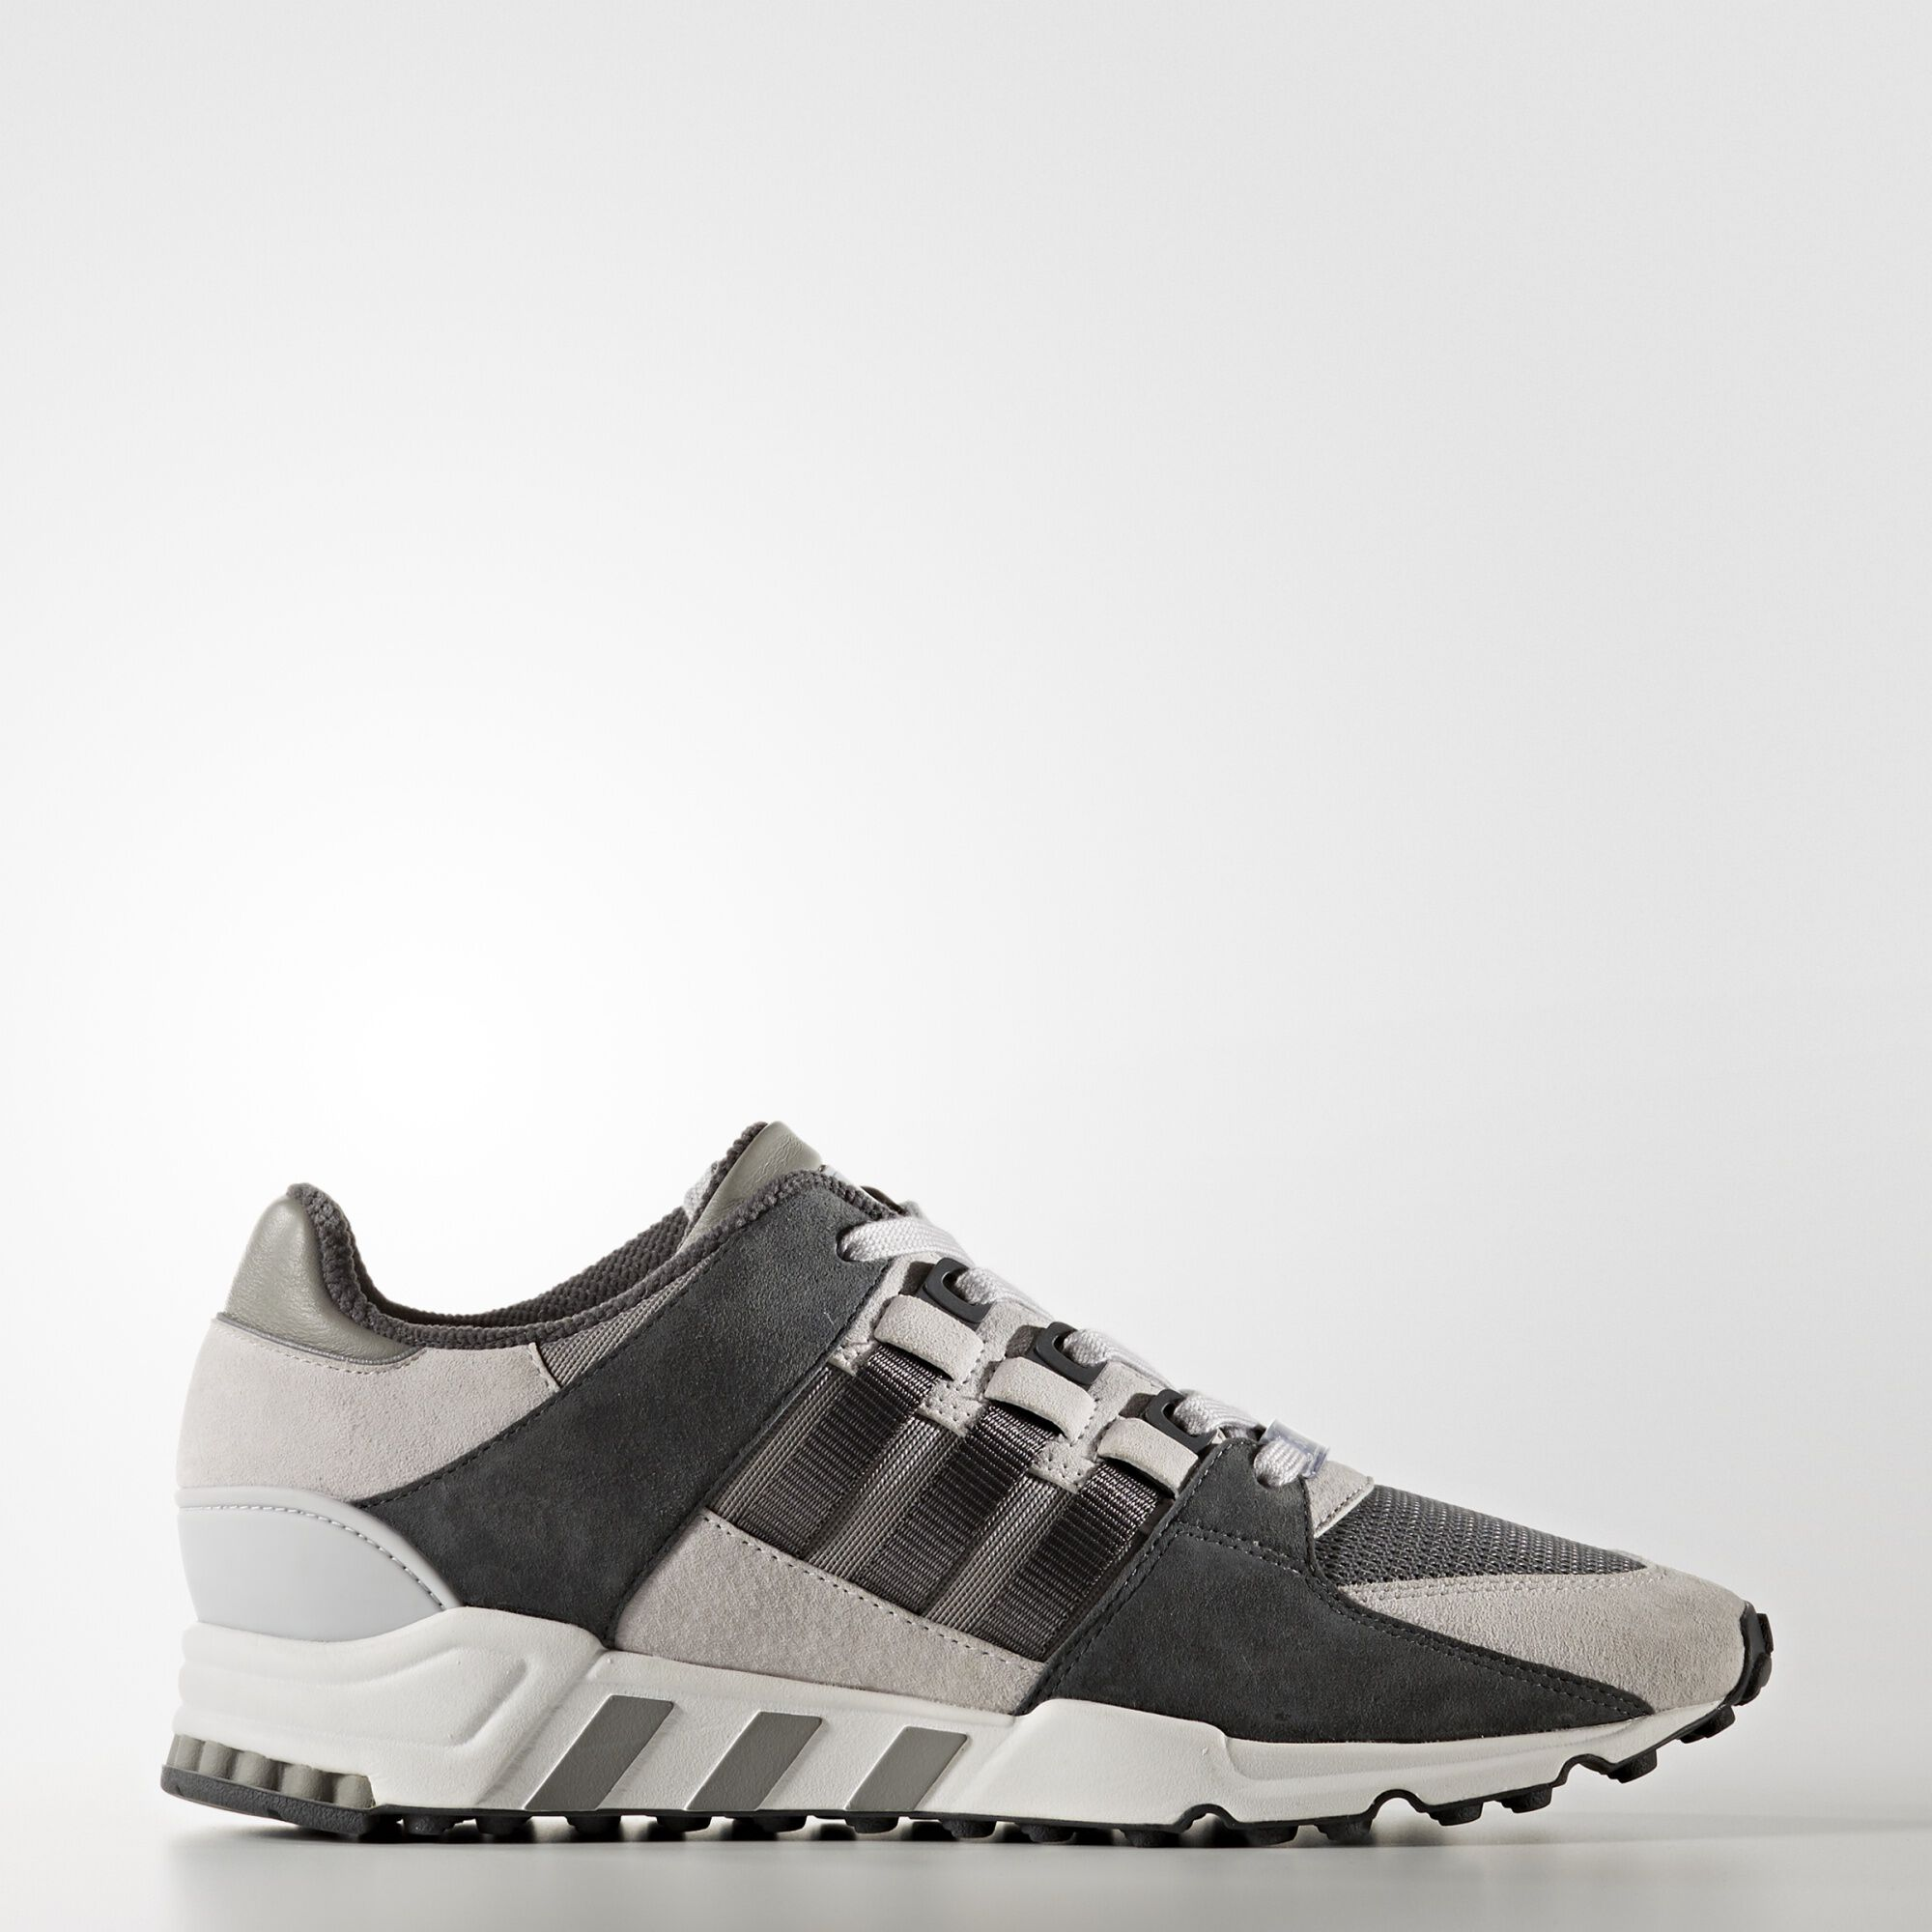 Archive Adidas EQT Running Support 93 Sneakerhead b24780